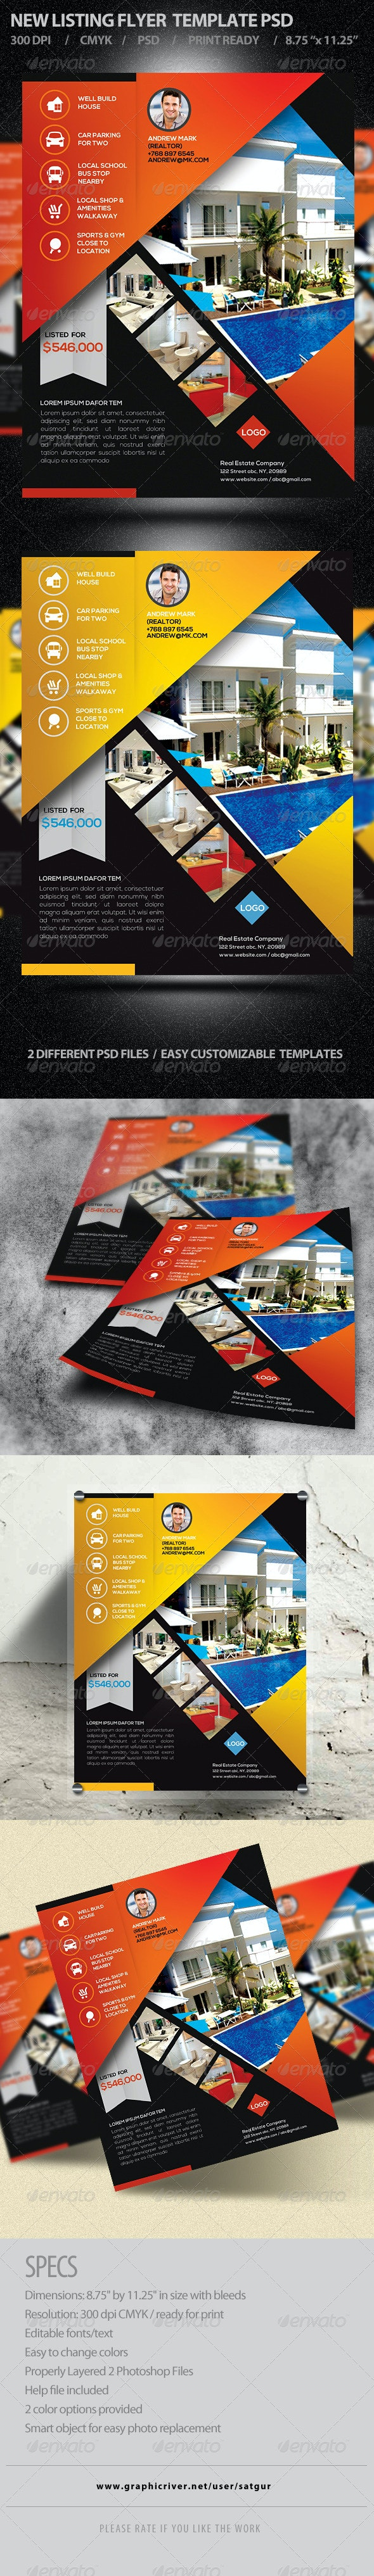 Real Estate / New Listing Promotion Flyer V2 - Corporate Flyers